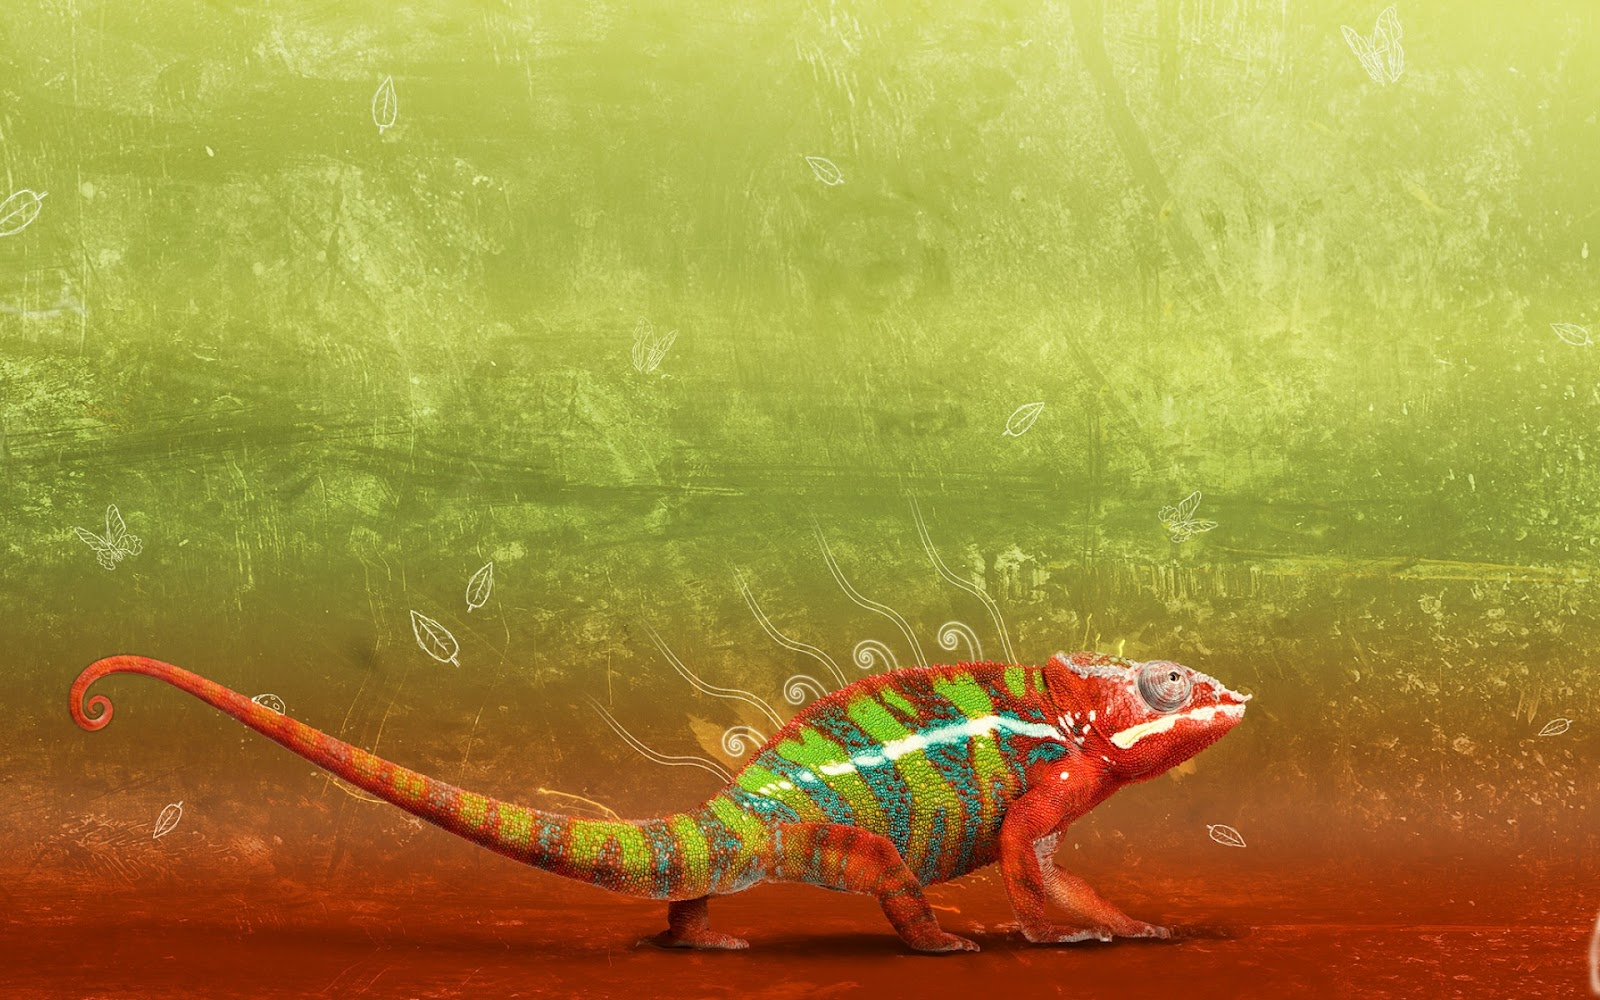 http://4.bp.blogspot.com/-5fhOkeamLQ0/T7Fmo_OCtyI/AAAAAAAAAZo/f8g3VcN13XE/s1600/Iguana-animal-creative-abstract-green-creative-wallpaper.jpg